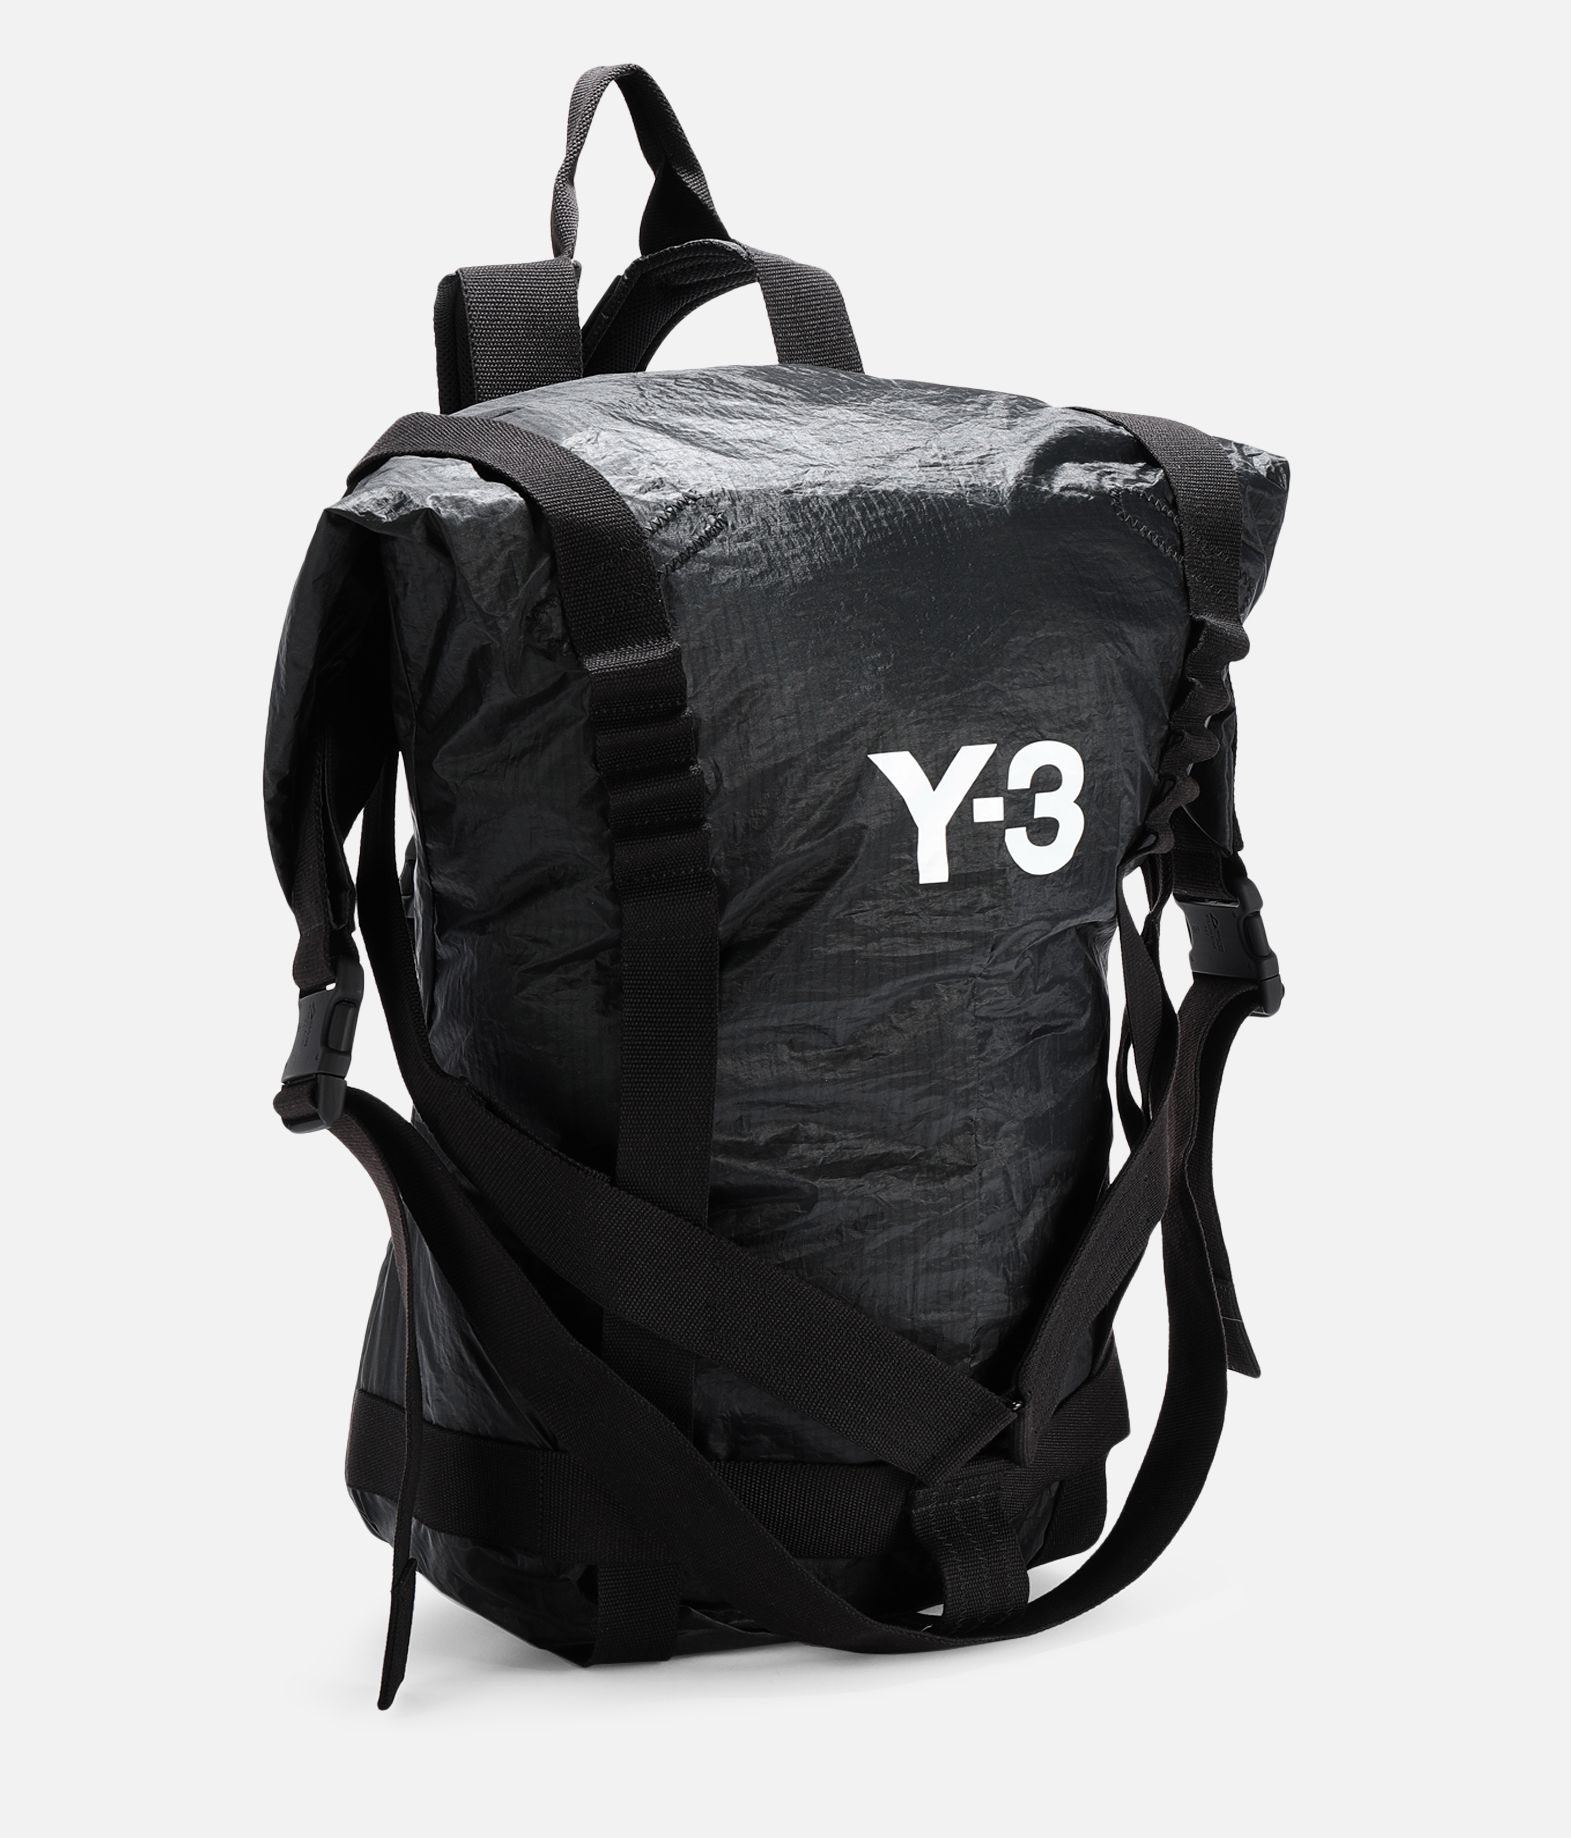 Y-3 Y-3 Itech Backpack Zaino E r